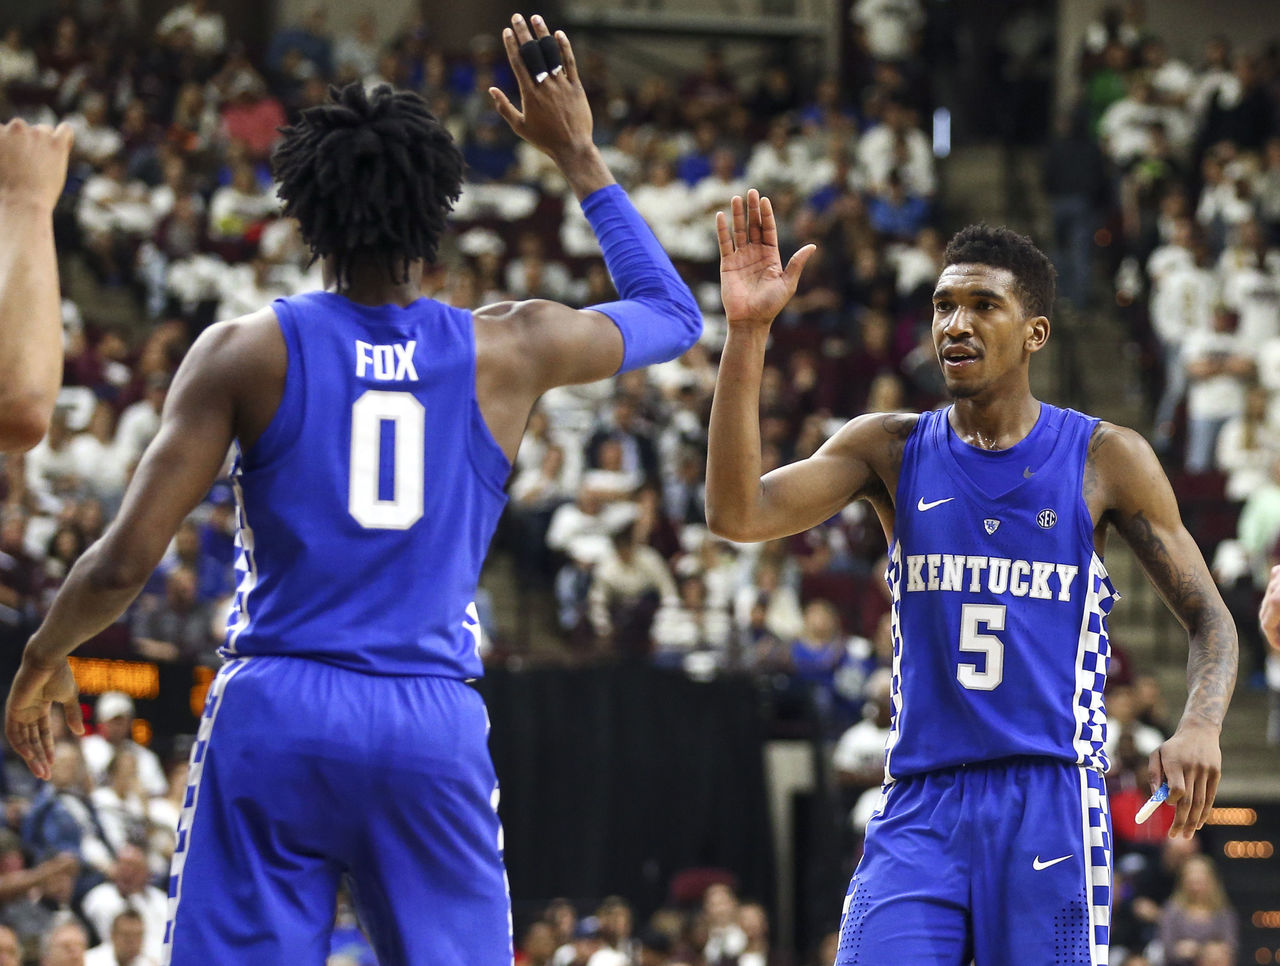 Cropped 2017 03 04t191912z 1357567113 nocid rtrmadp 3 ncaa basketball kentucky at texas a m